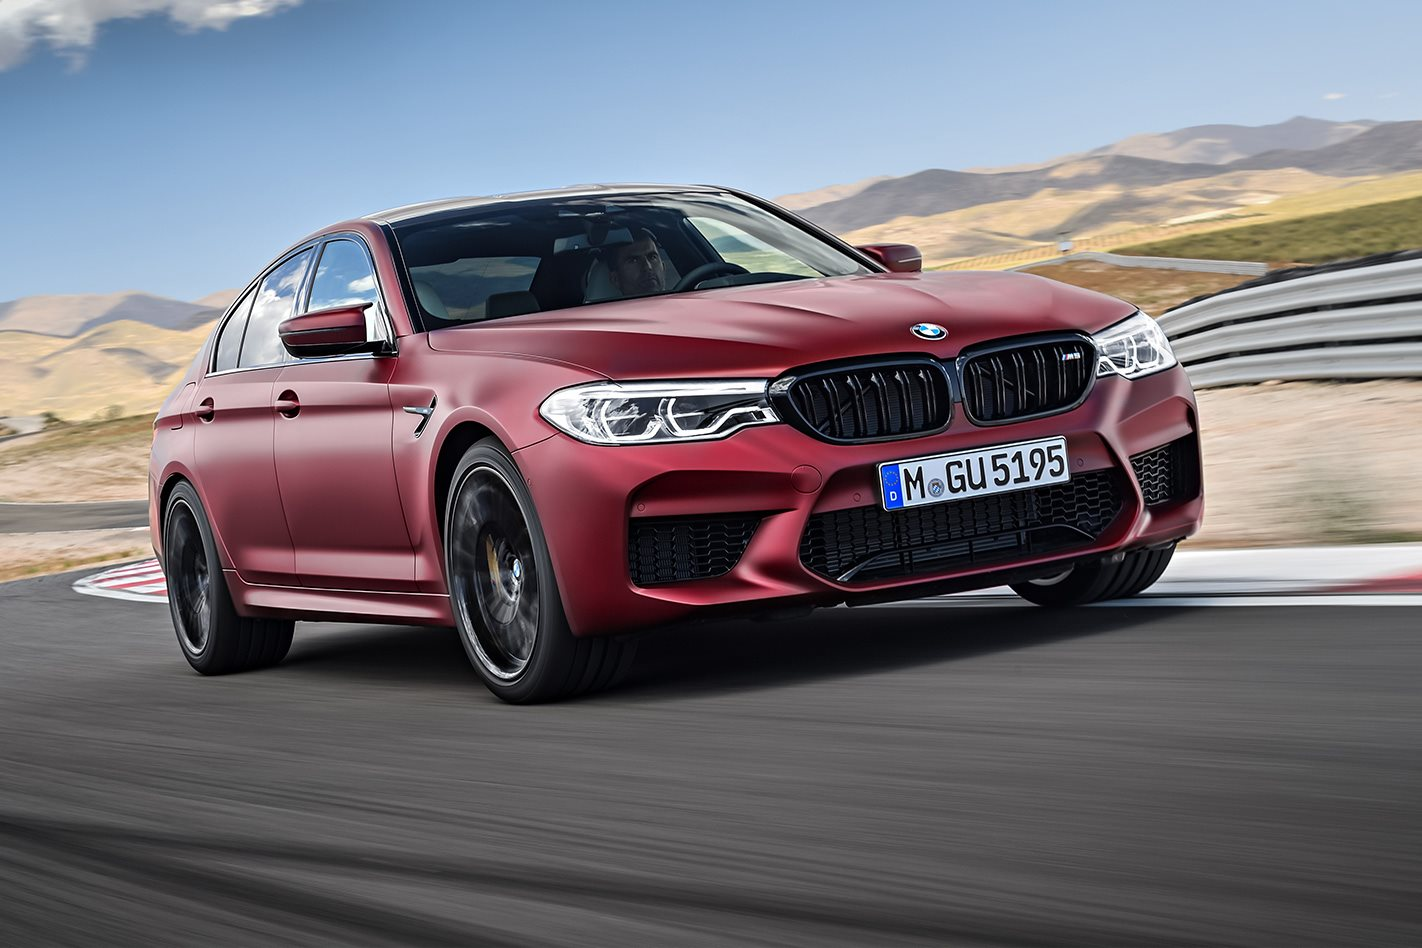 2018 Bmw M5 To Be Available Only As Special Editions